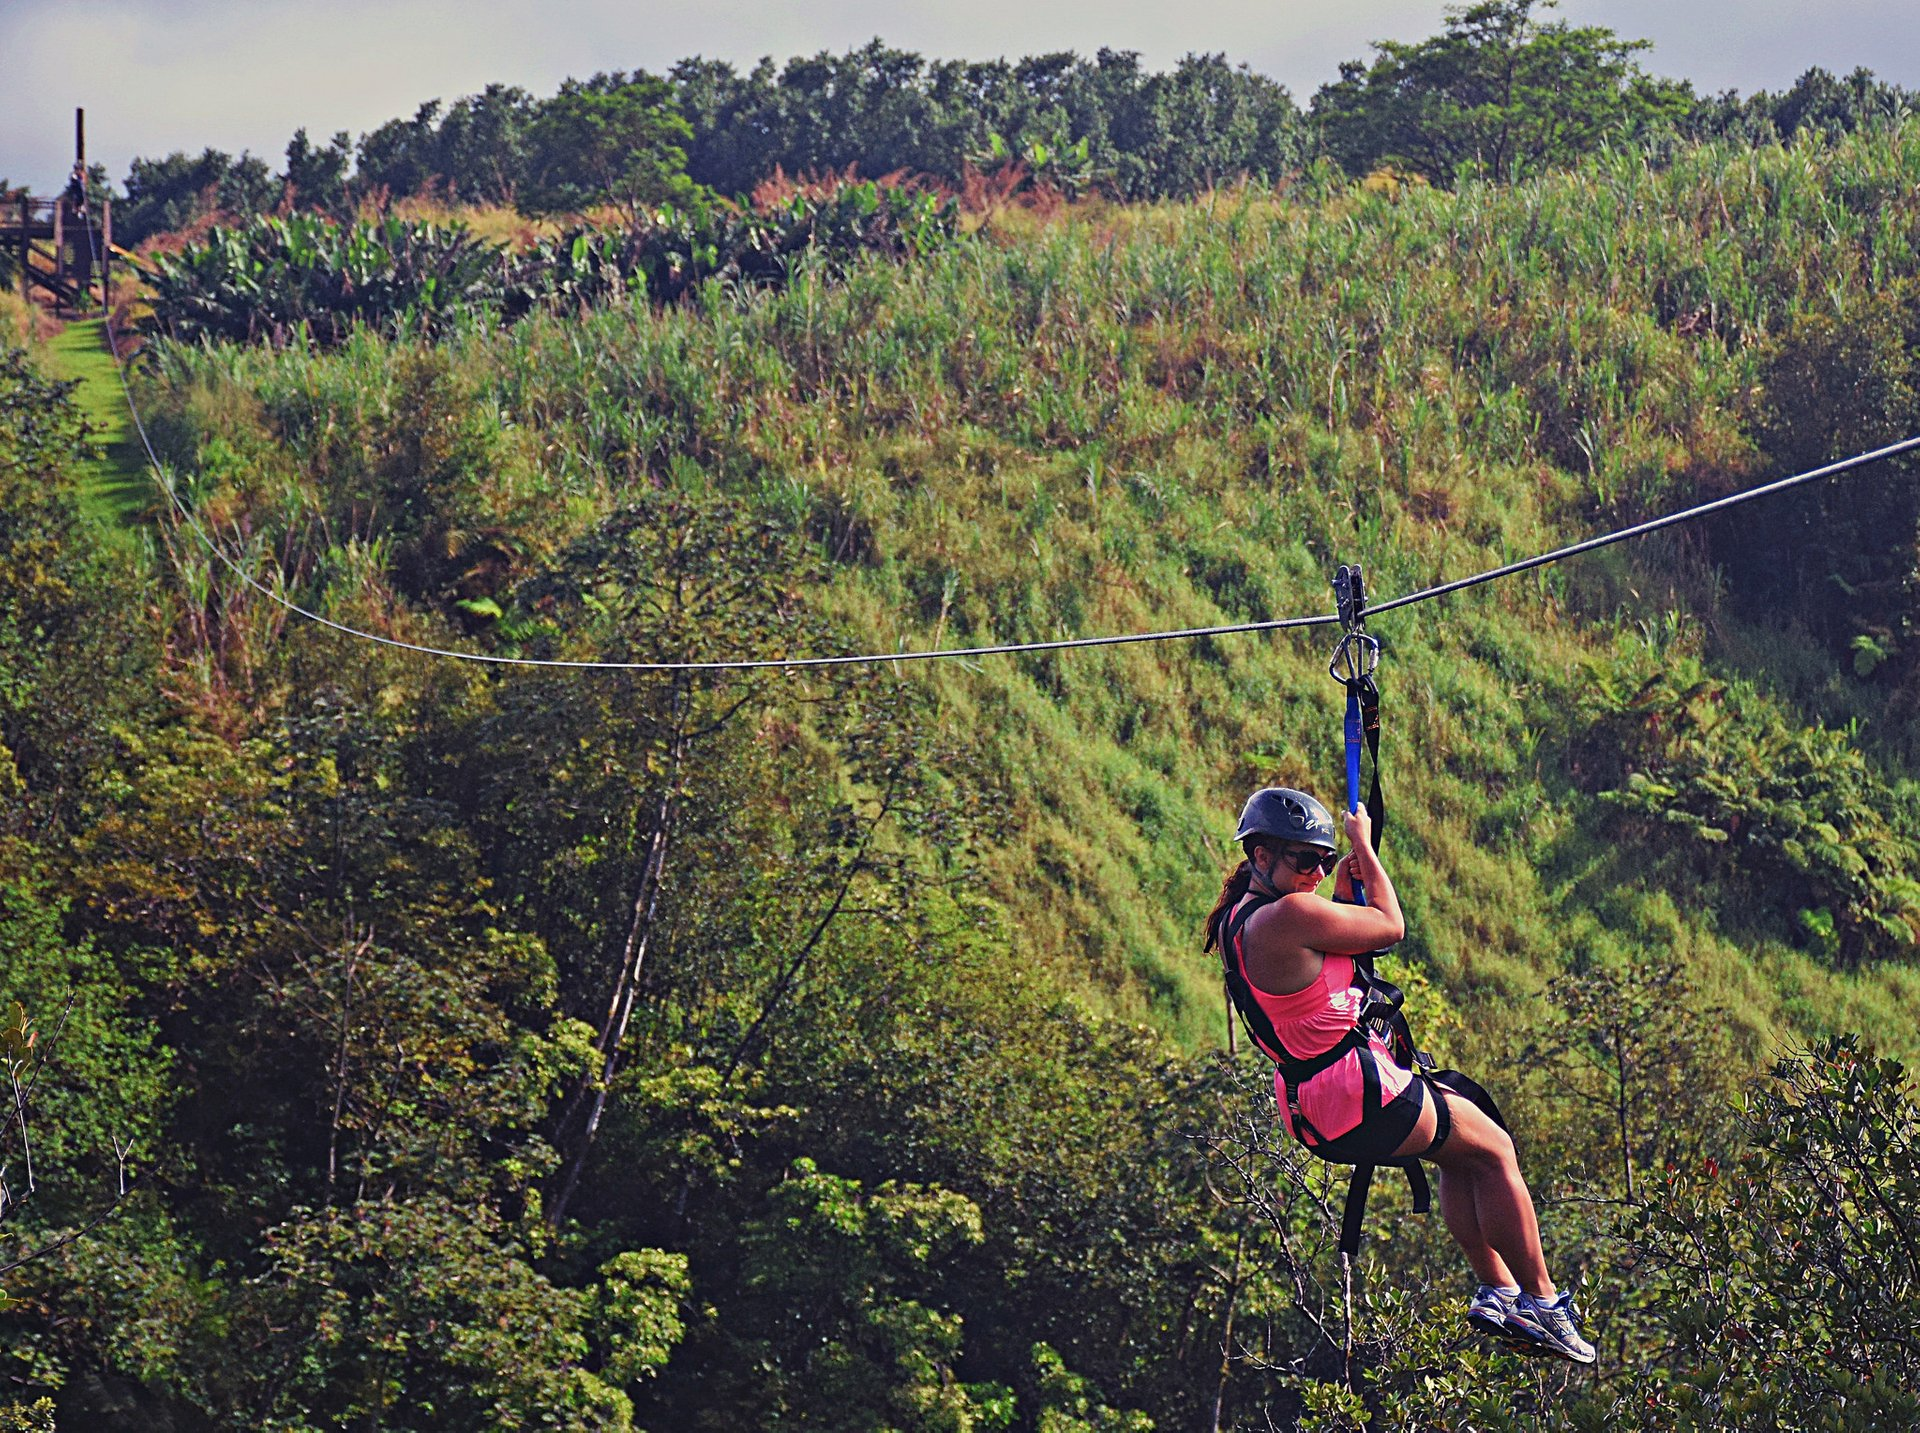 Ziplining in Hawaii - Best Season